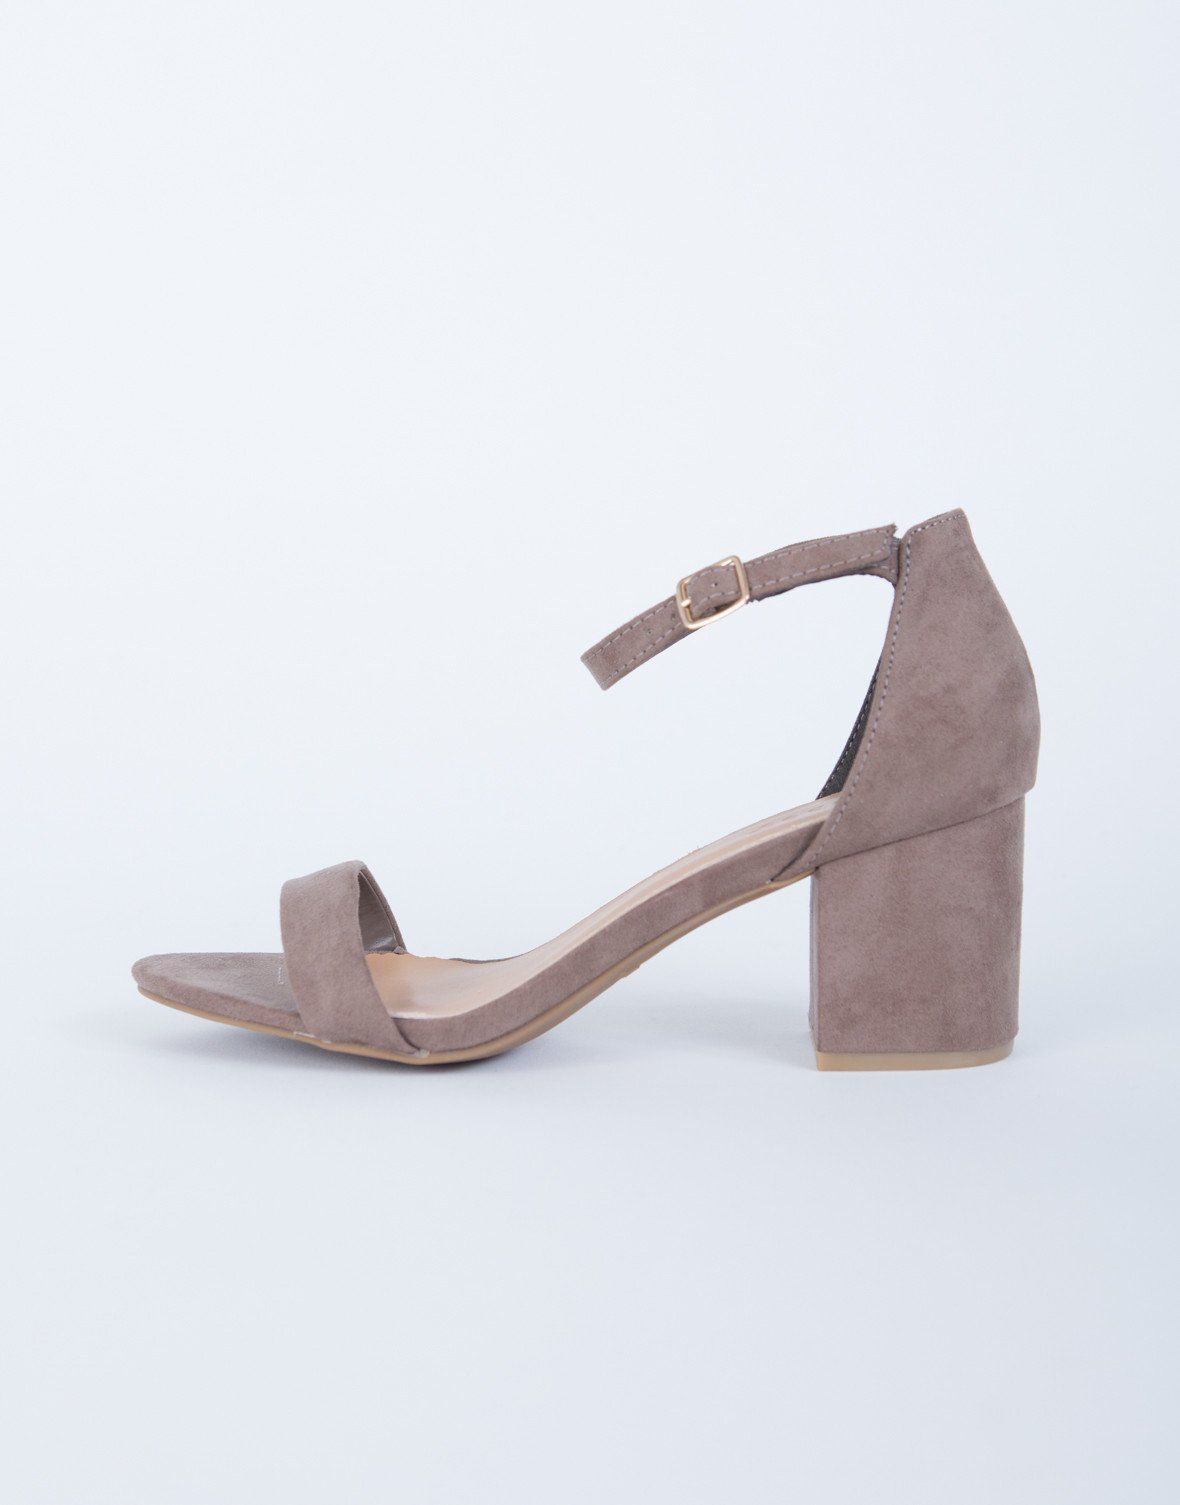 ca7484ed3b5 Ankle Strapped Block Heel Sandals in 2019